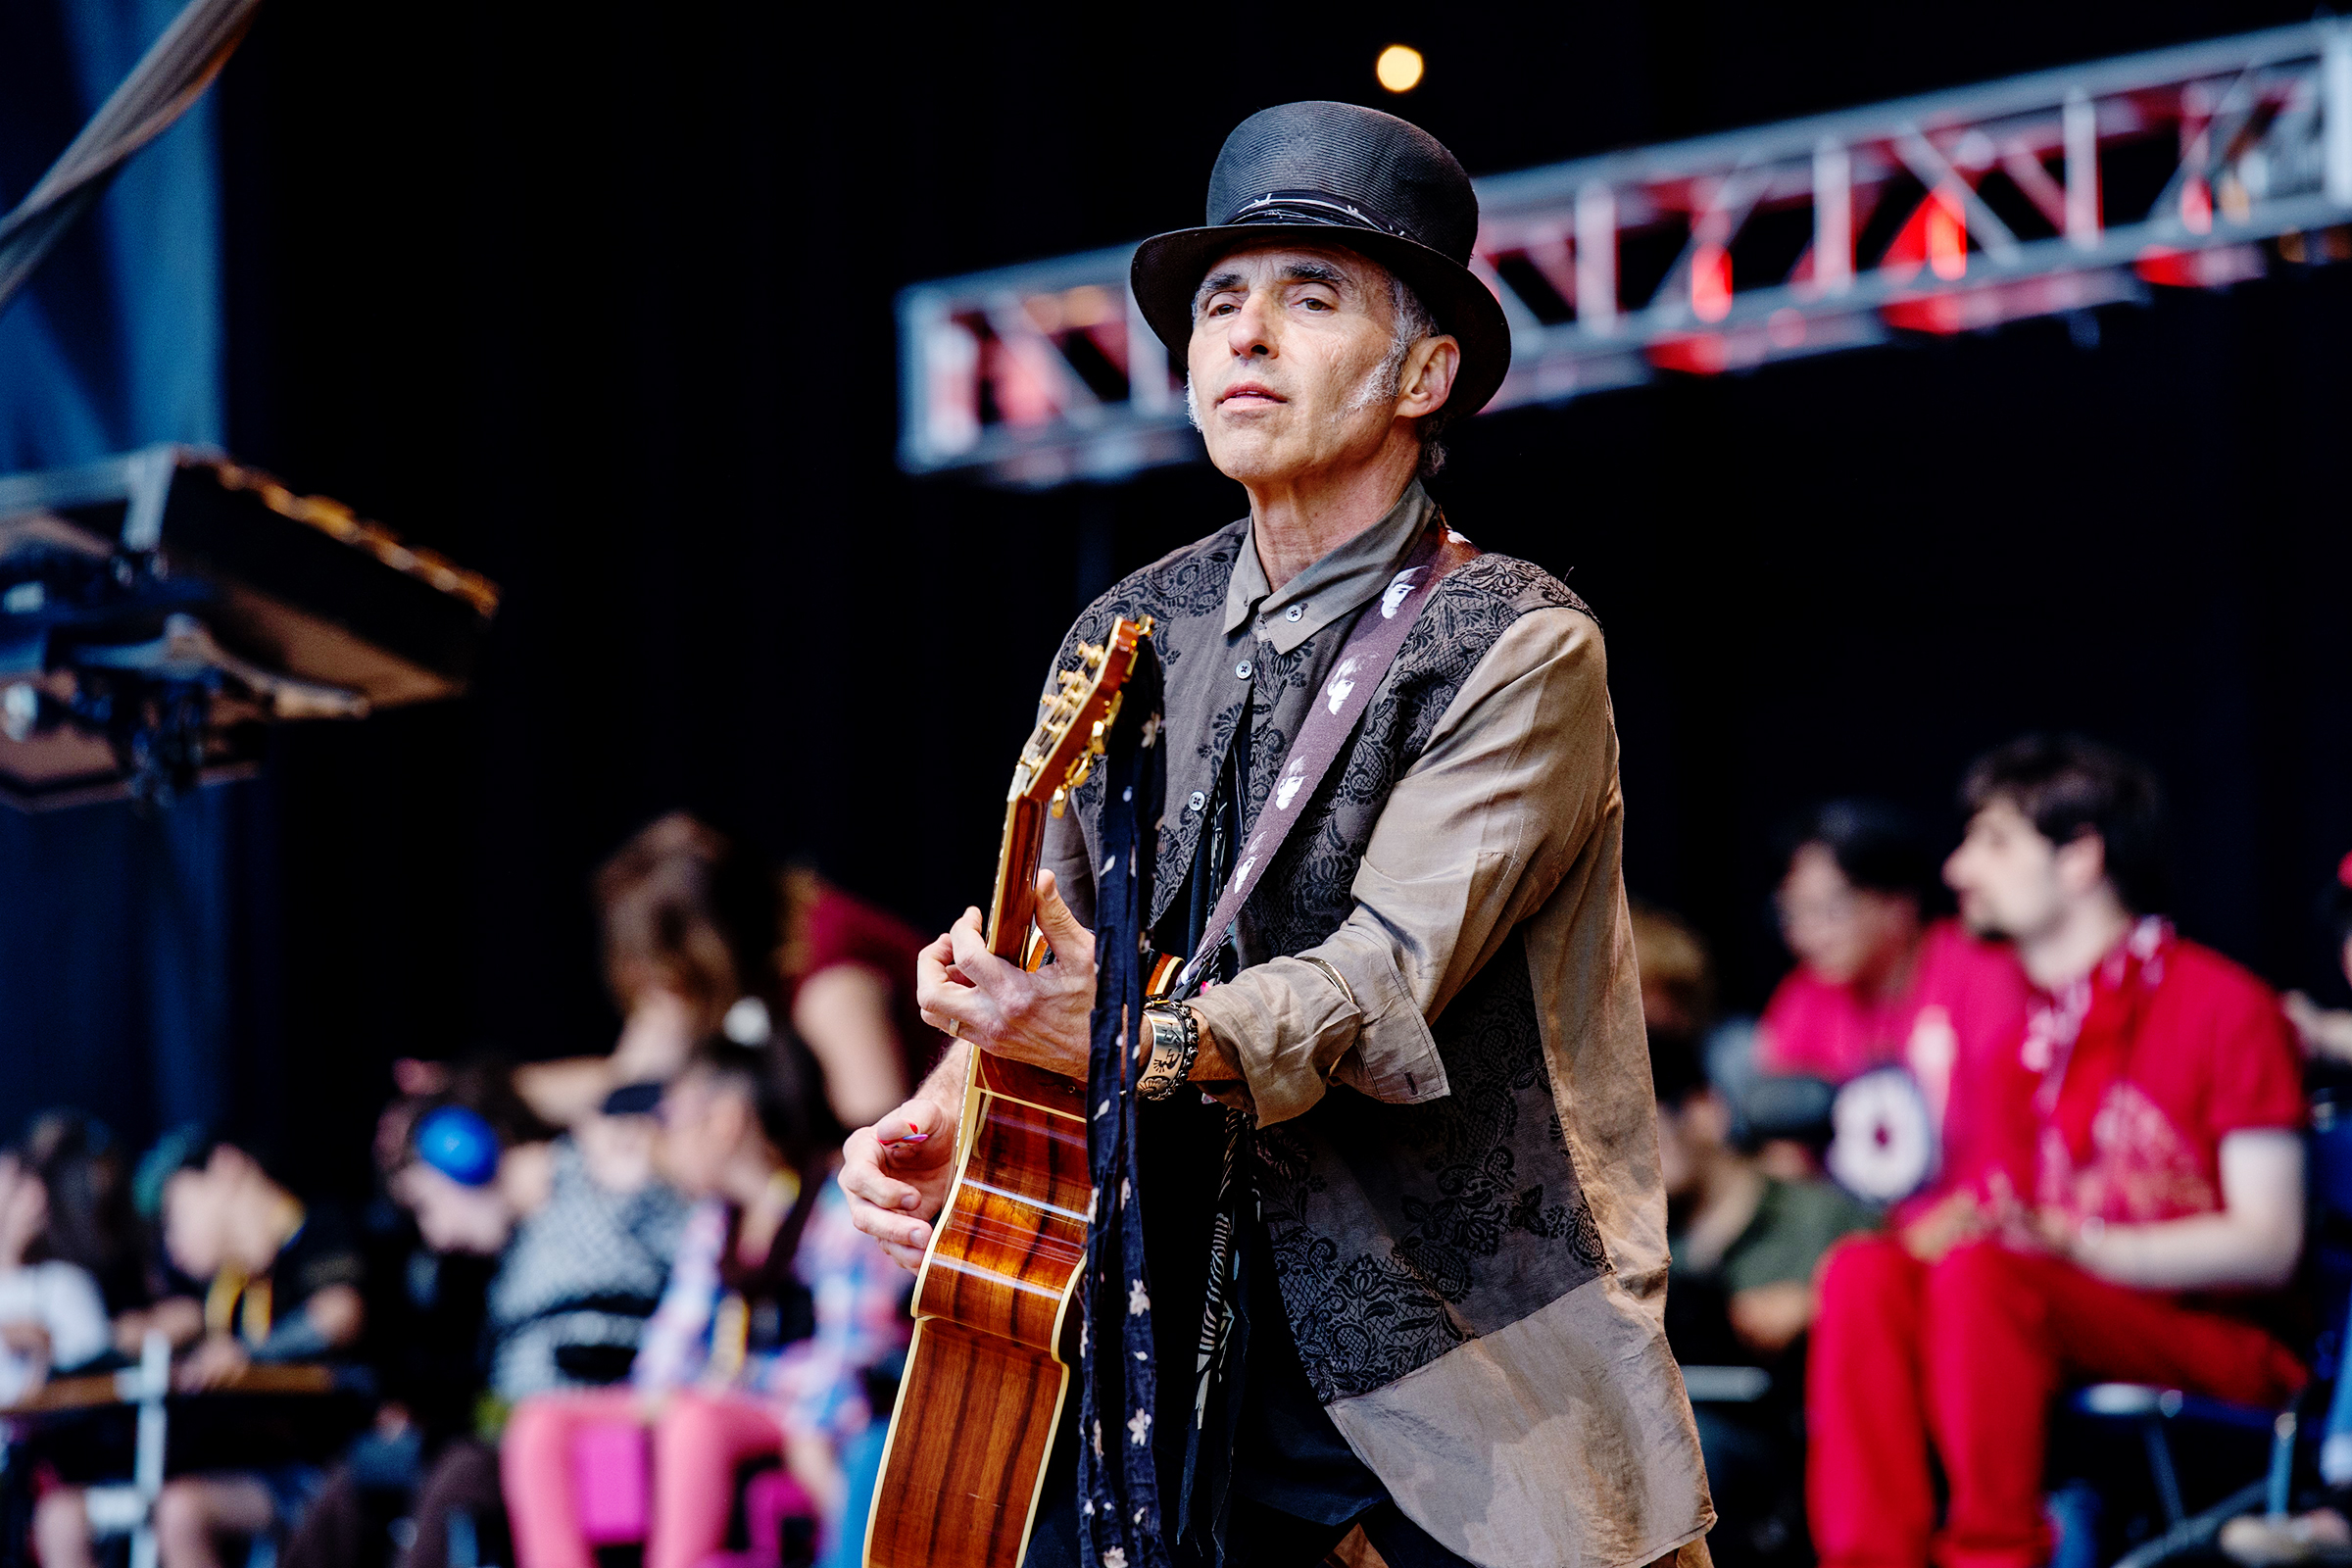 Nils Lofgren performs at the 30th Annual Bridge School Benefit Concert at the Shoreline Ampthitheatre, in Mountain View, Calif30th Annual Bridge School Benefit Concert - Day 2, San Francisco, USA